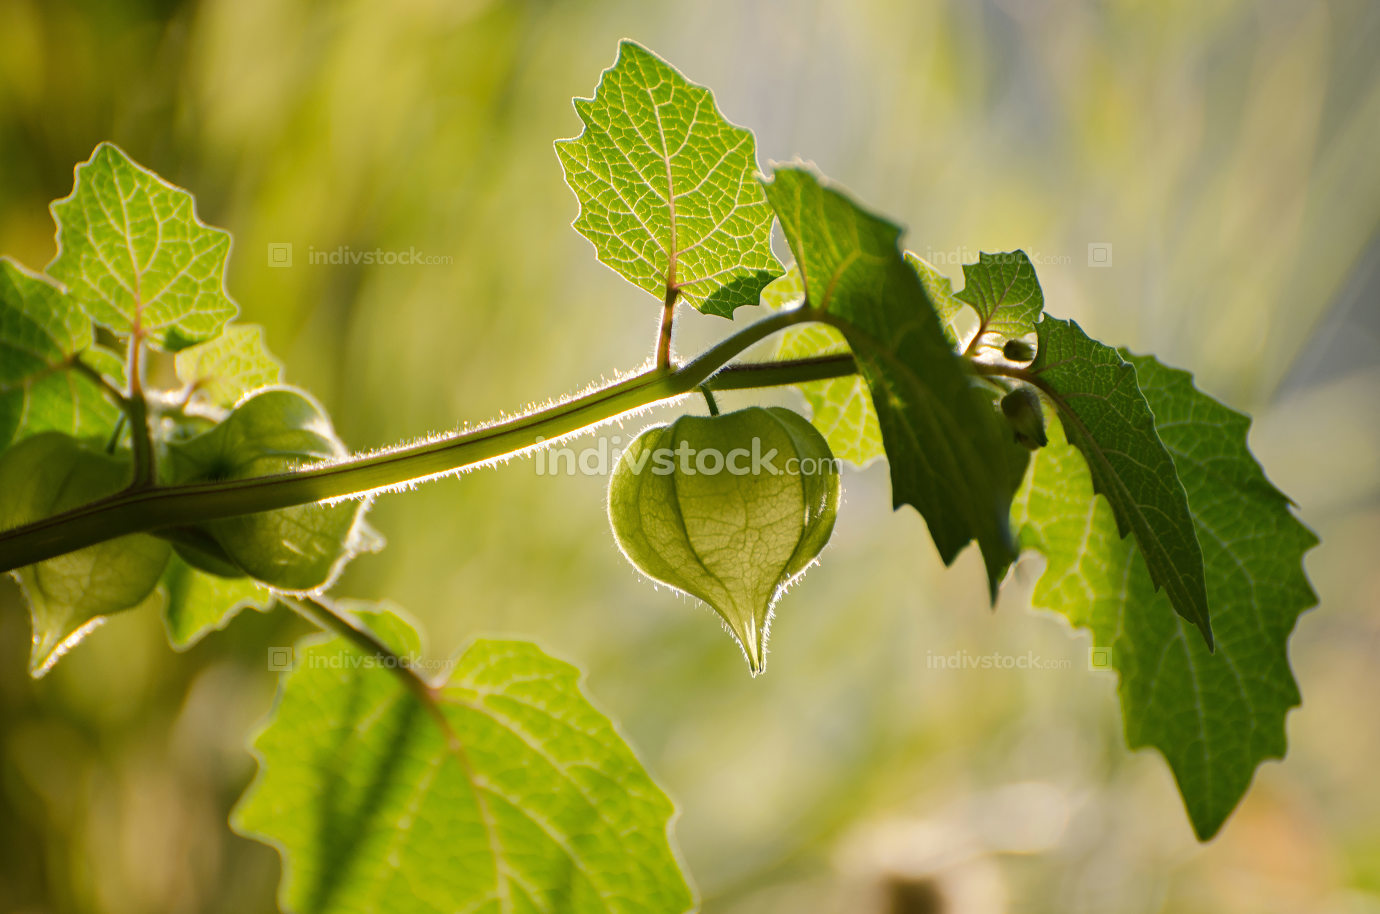 Green physalis on branch as background.